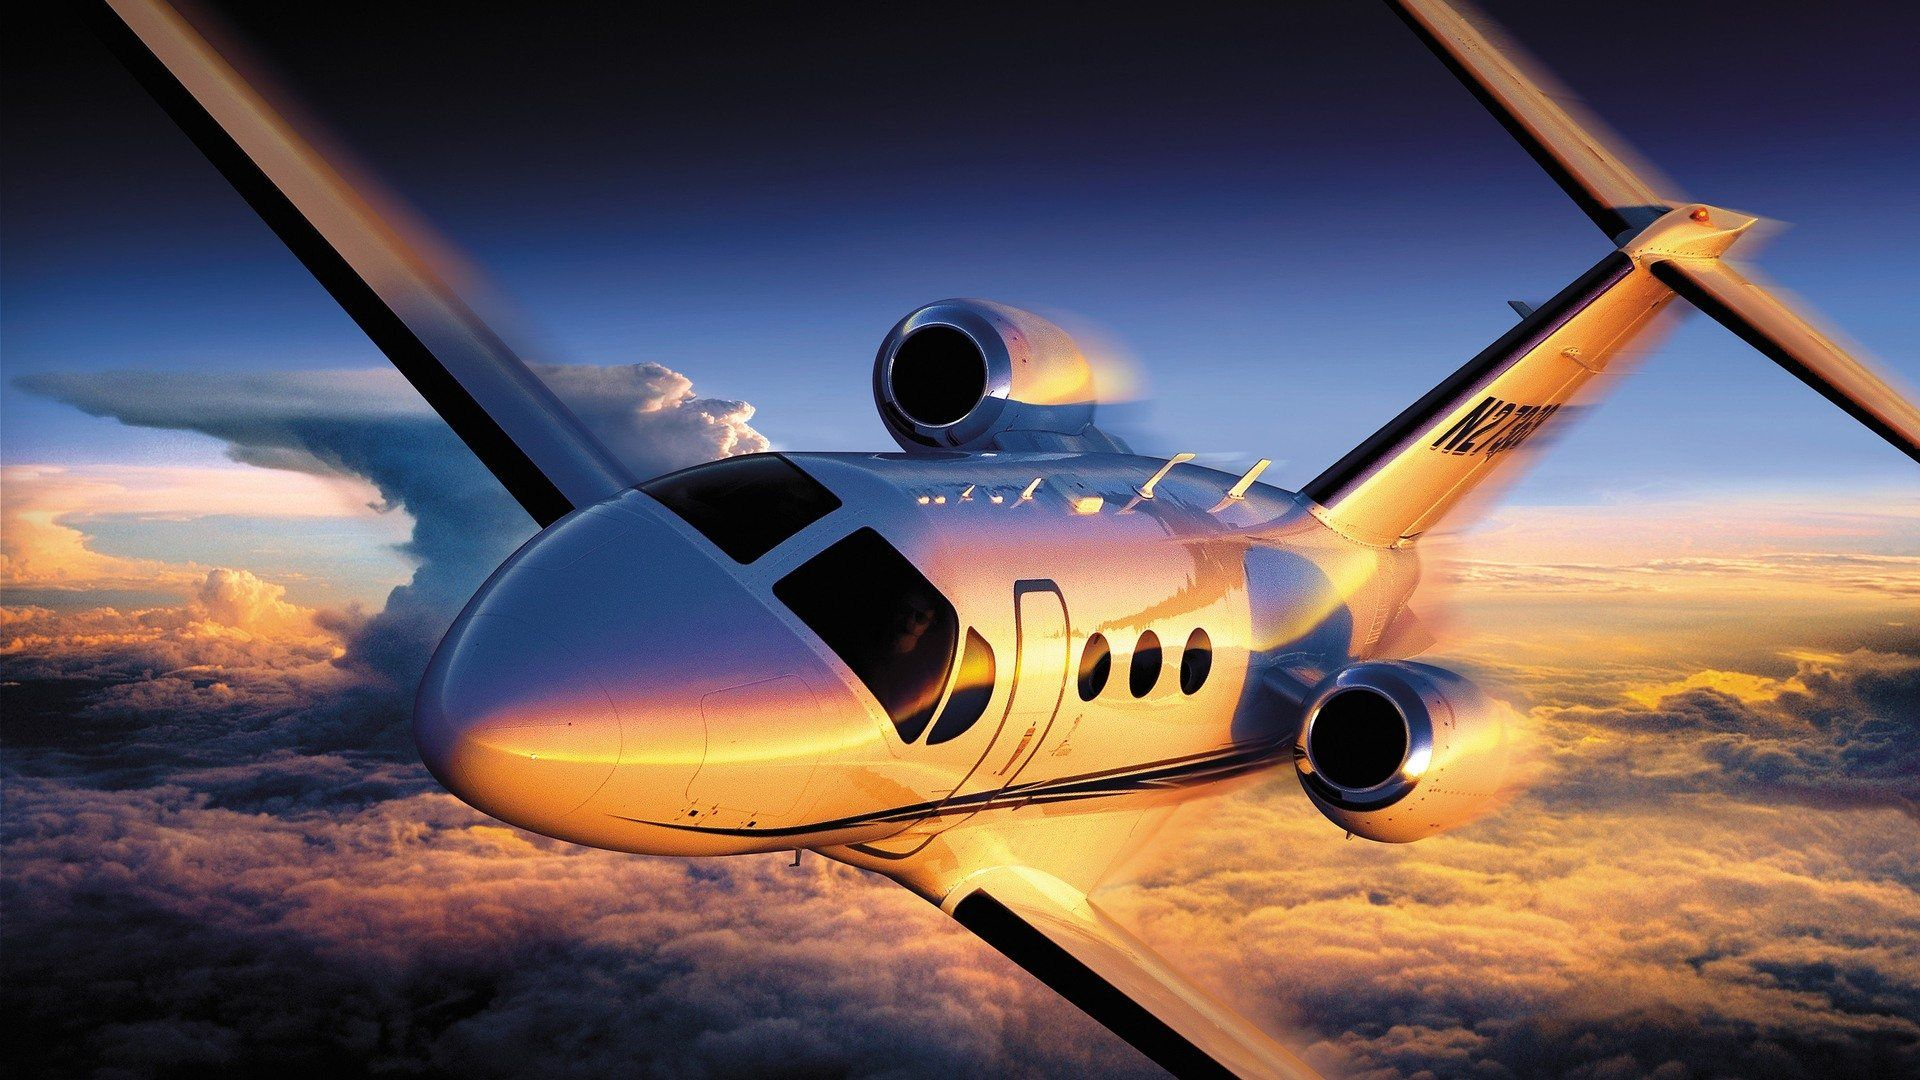 Image for Planes Trains Privat Jet Wallpaper Desktopn Free